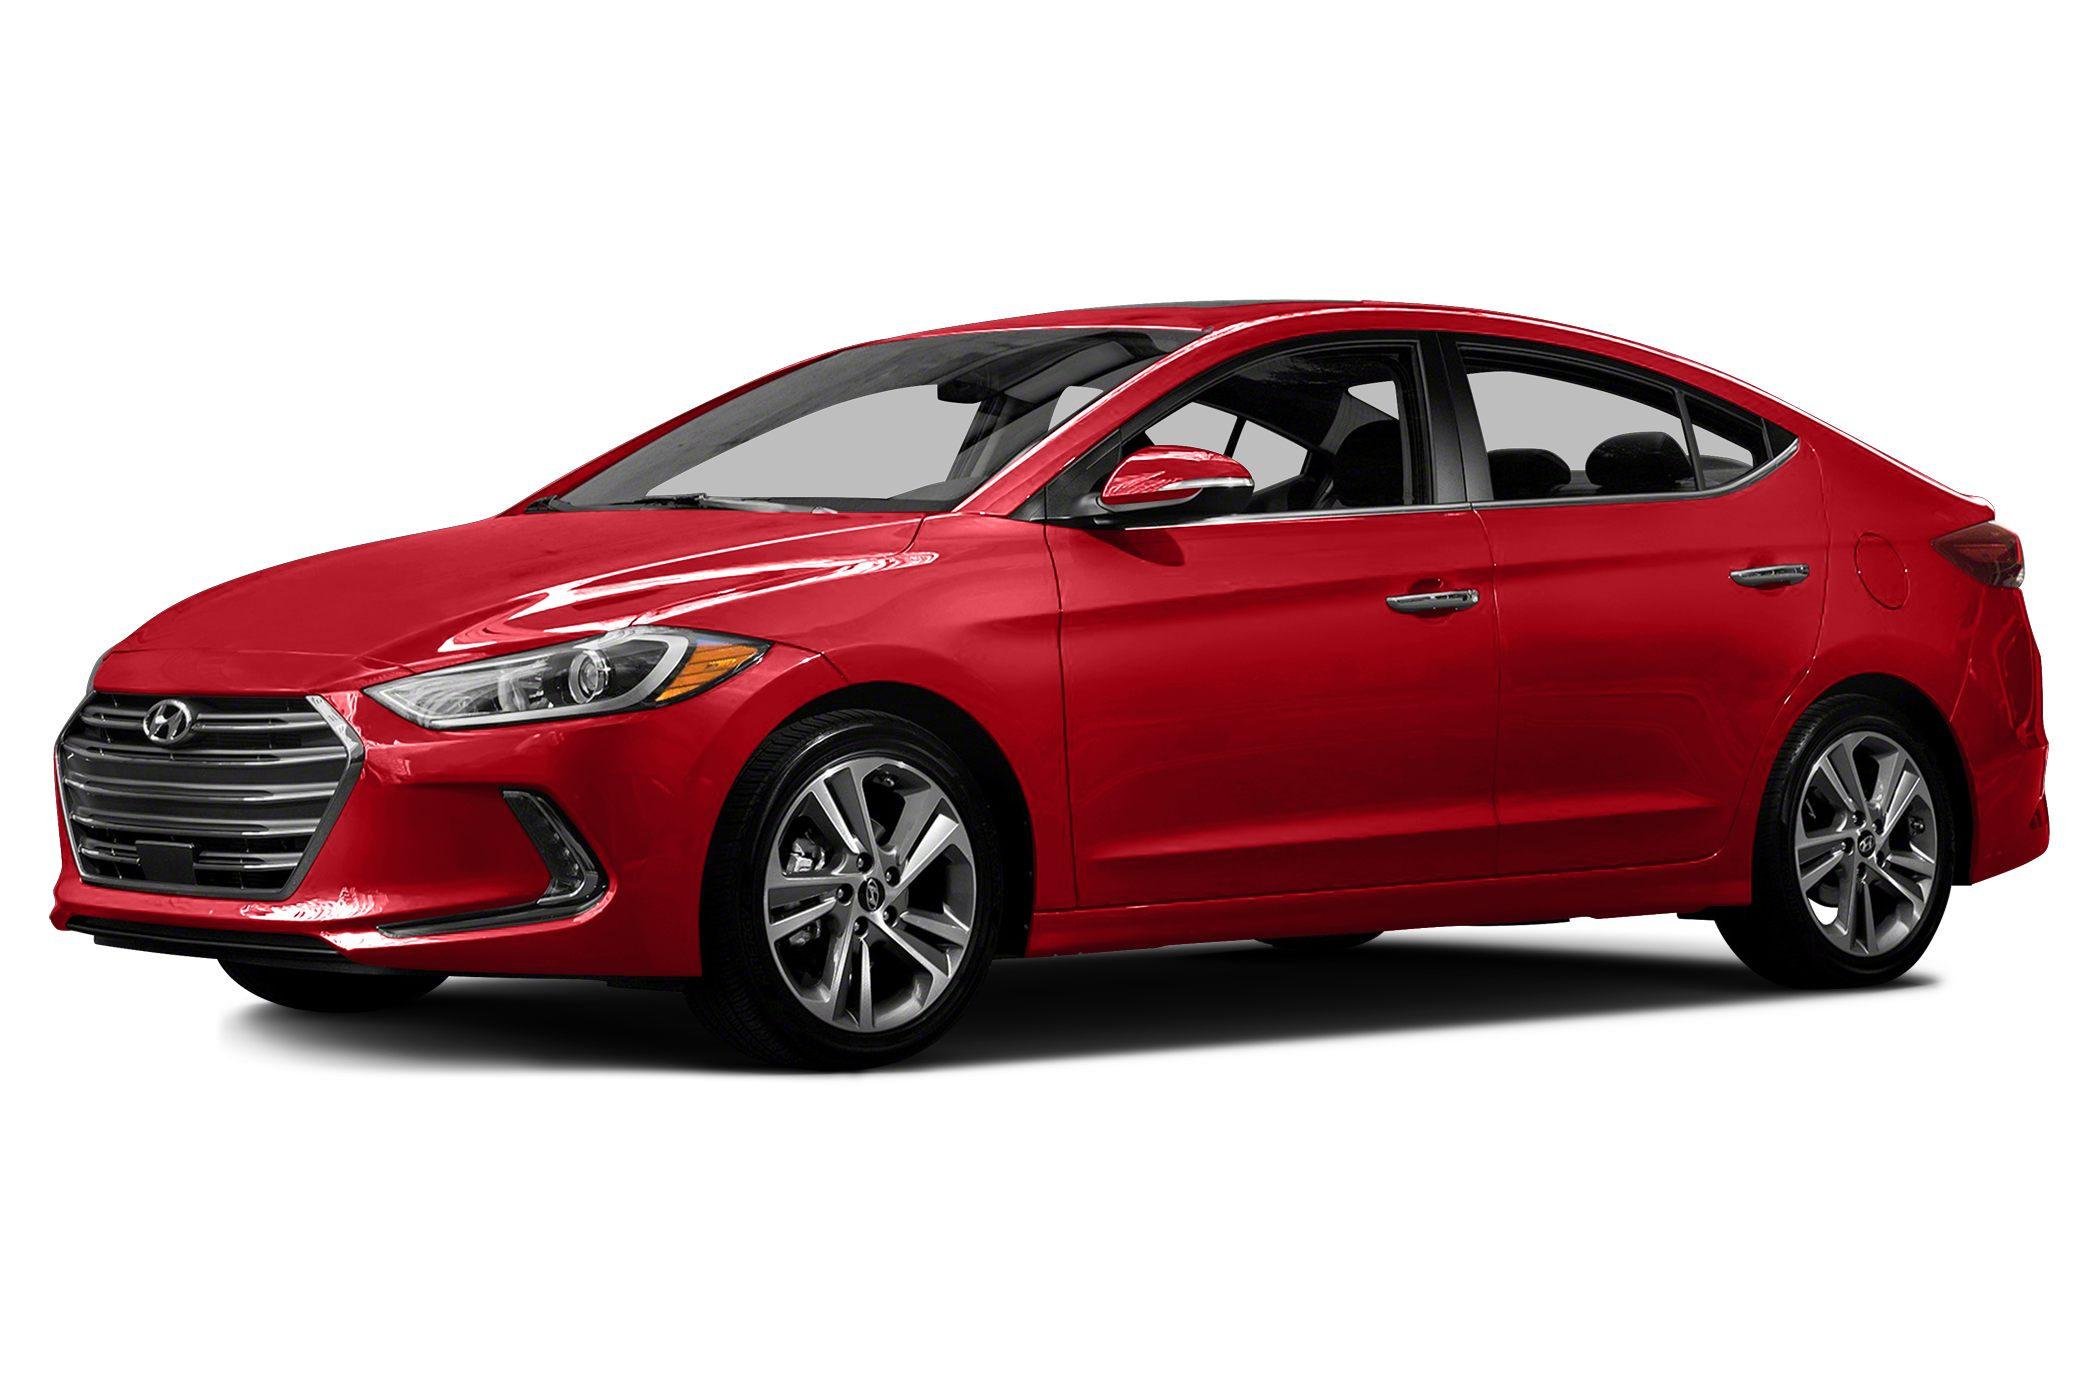 new lease car elantra special offers rebates en for finance best accent deals only insituationimage specials hyundai promotions